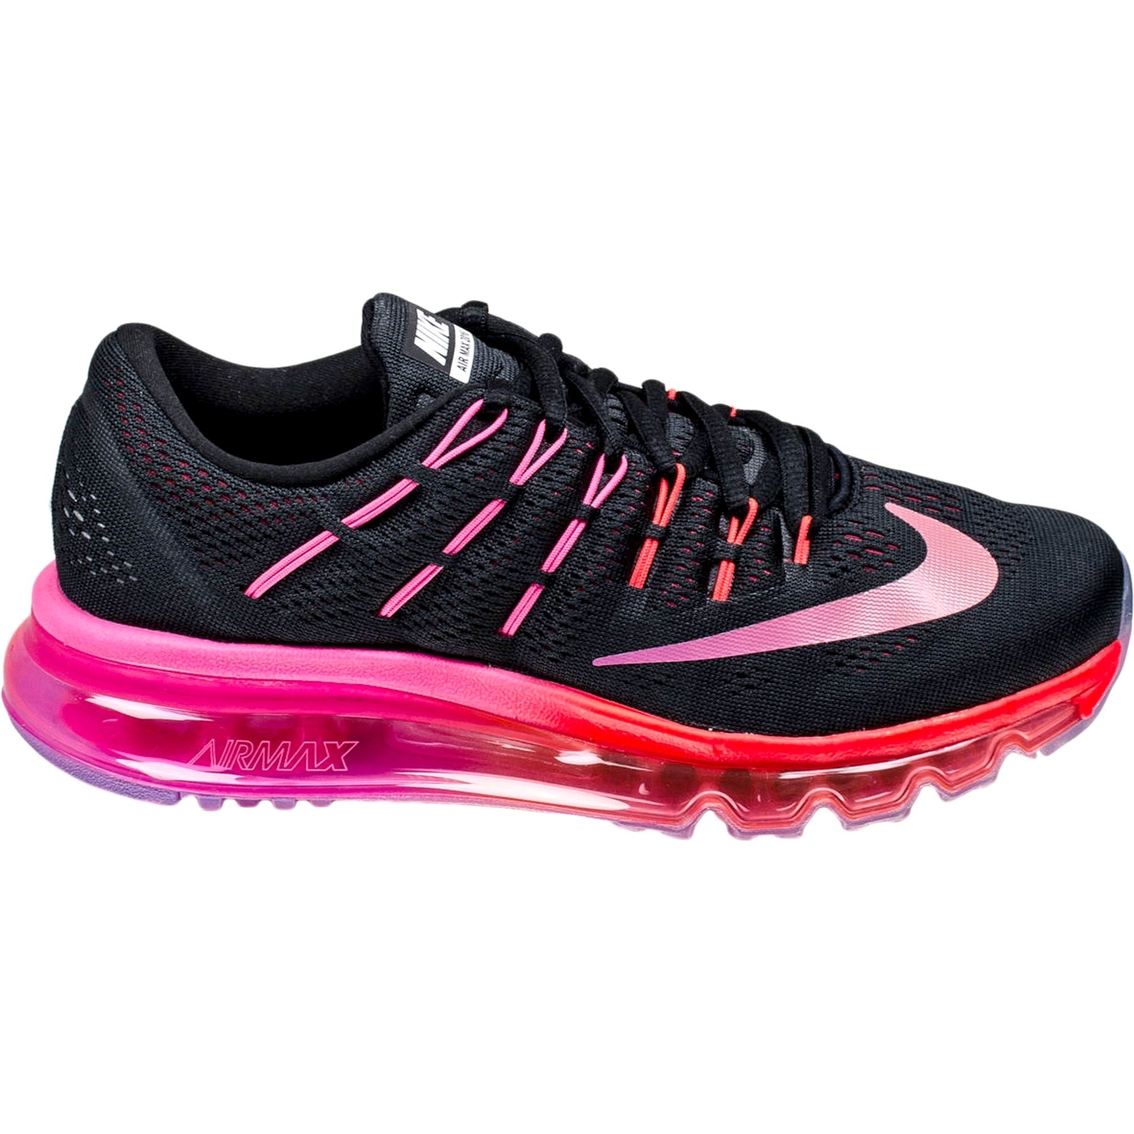 Nike Men's Air Max 2016 Running Shoes | Running | Shoes